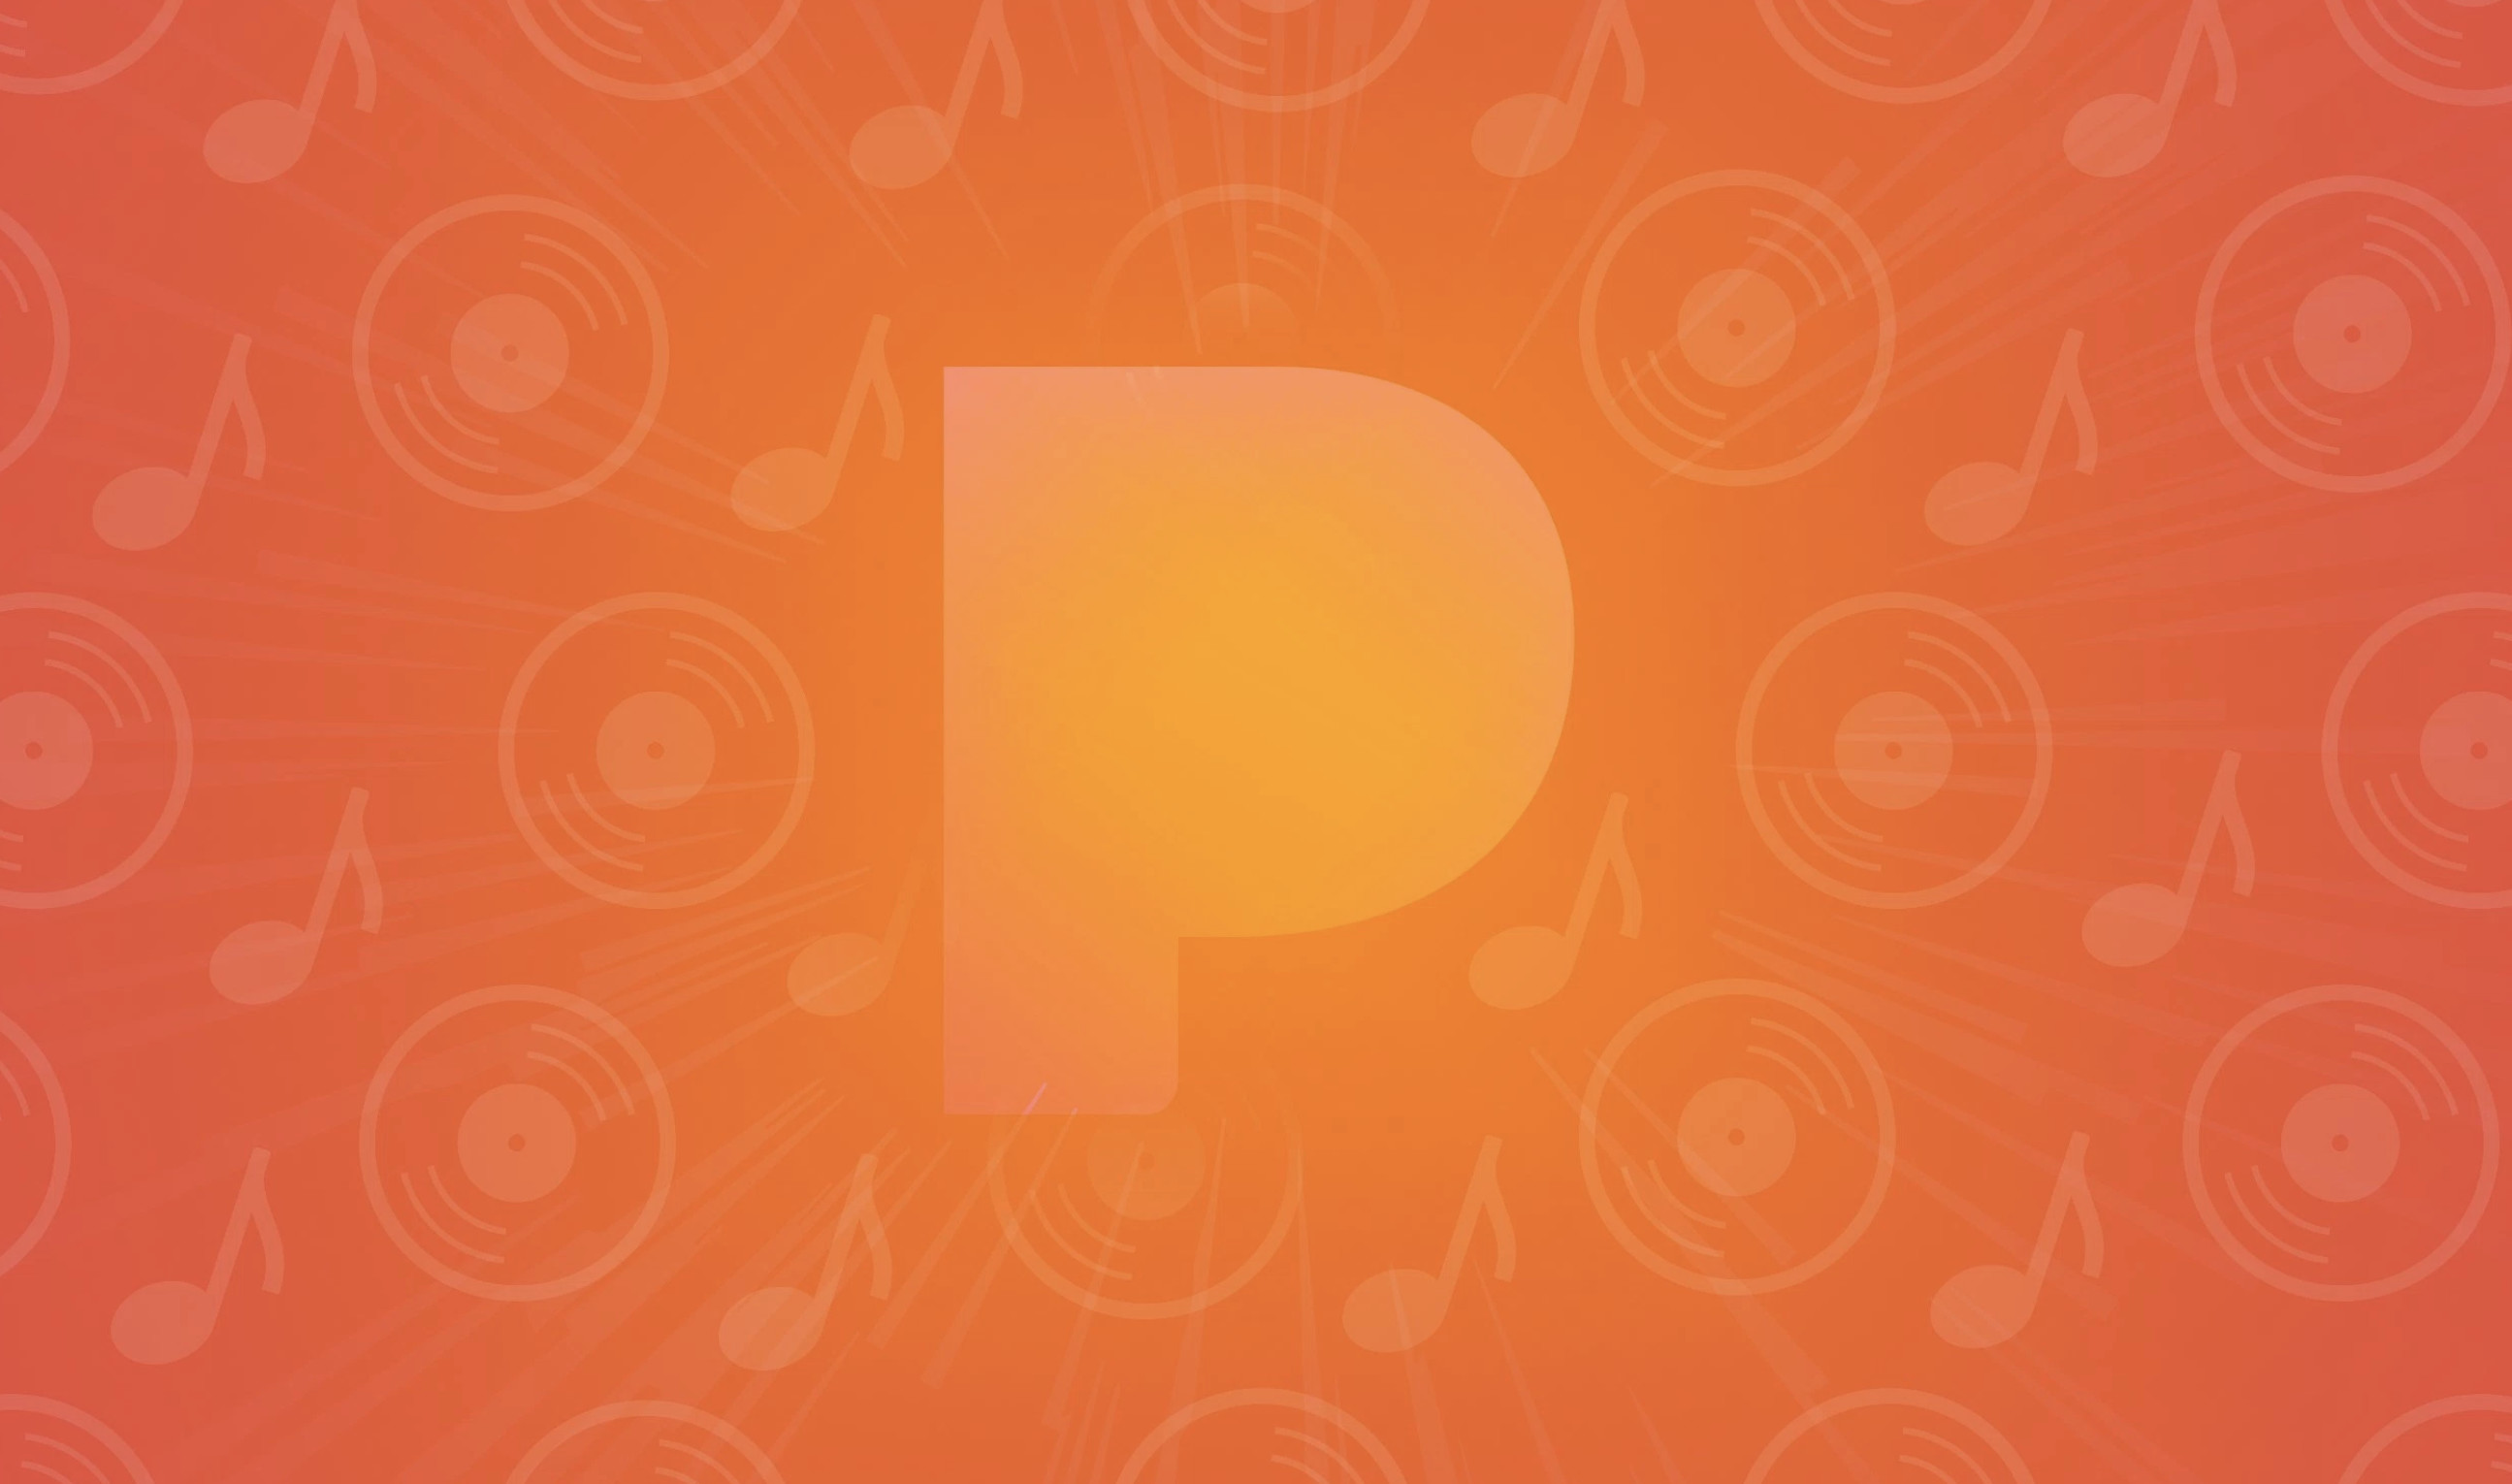 How to sample Pandora's Premium service for free in the US